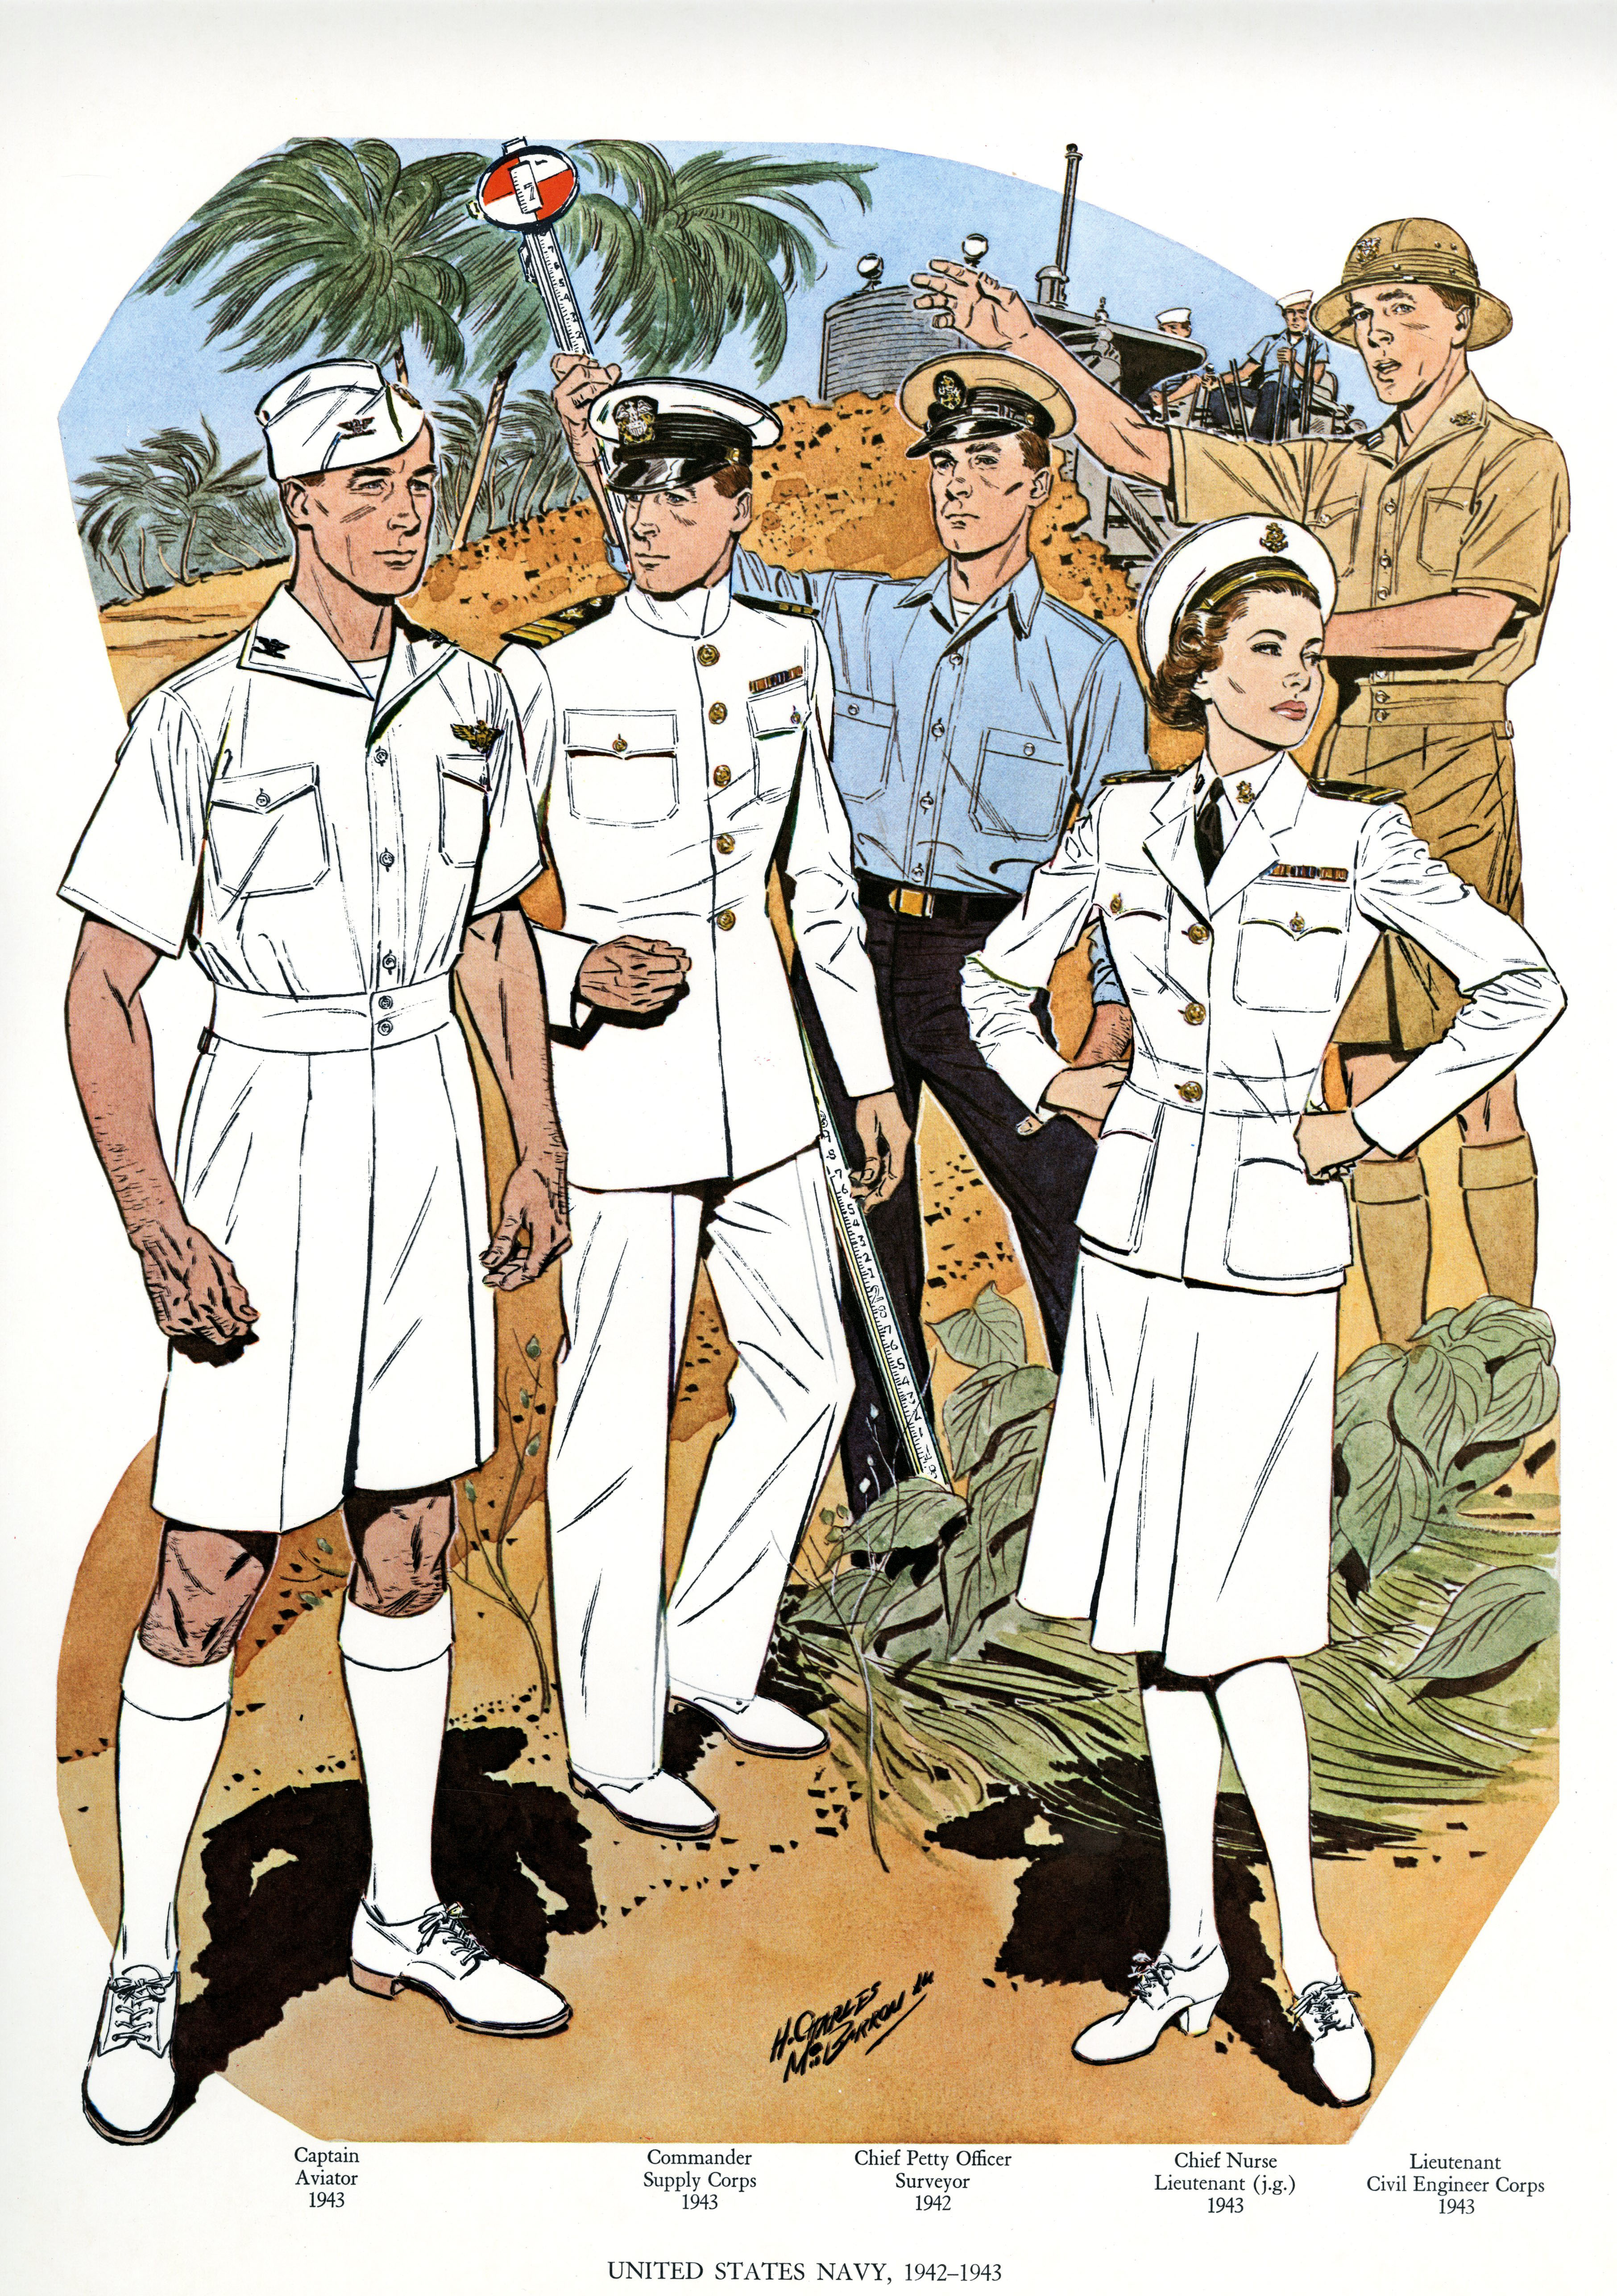 uniforms of the us navy 1942 1943